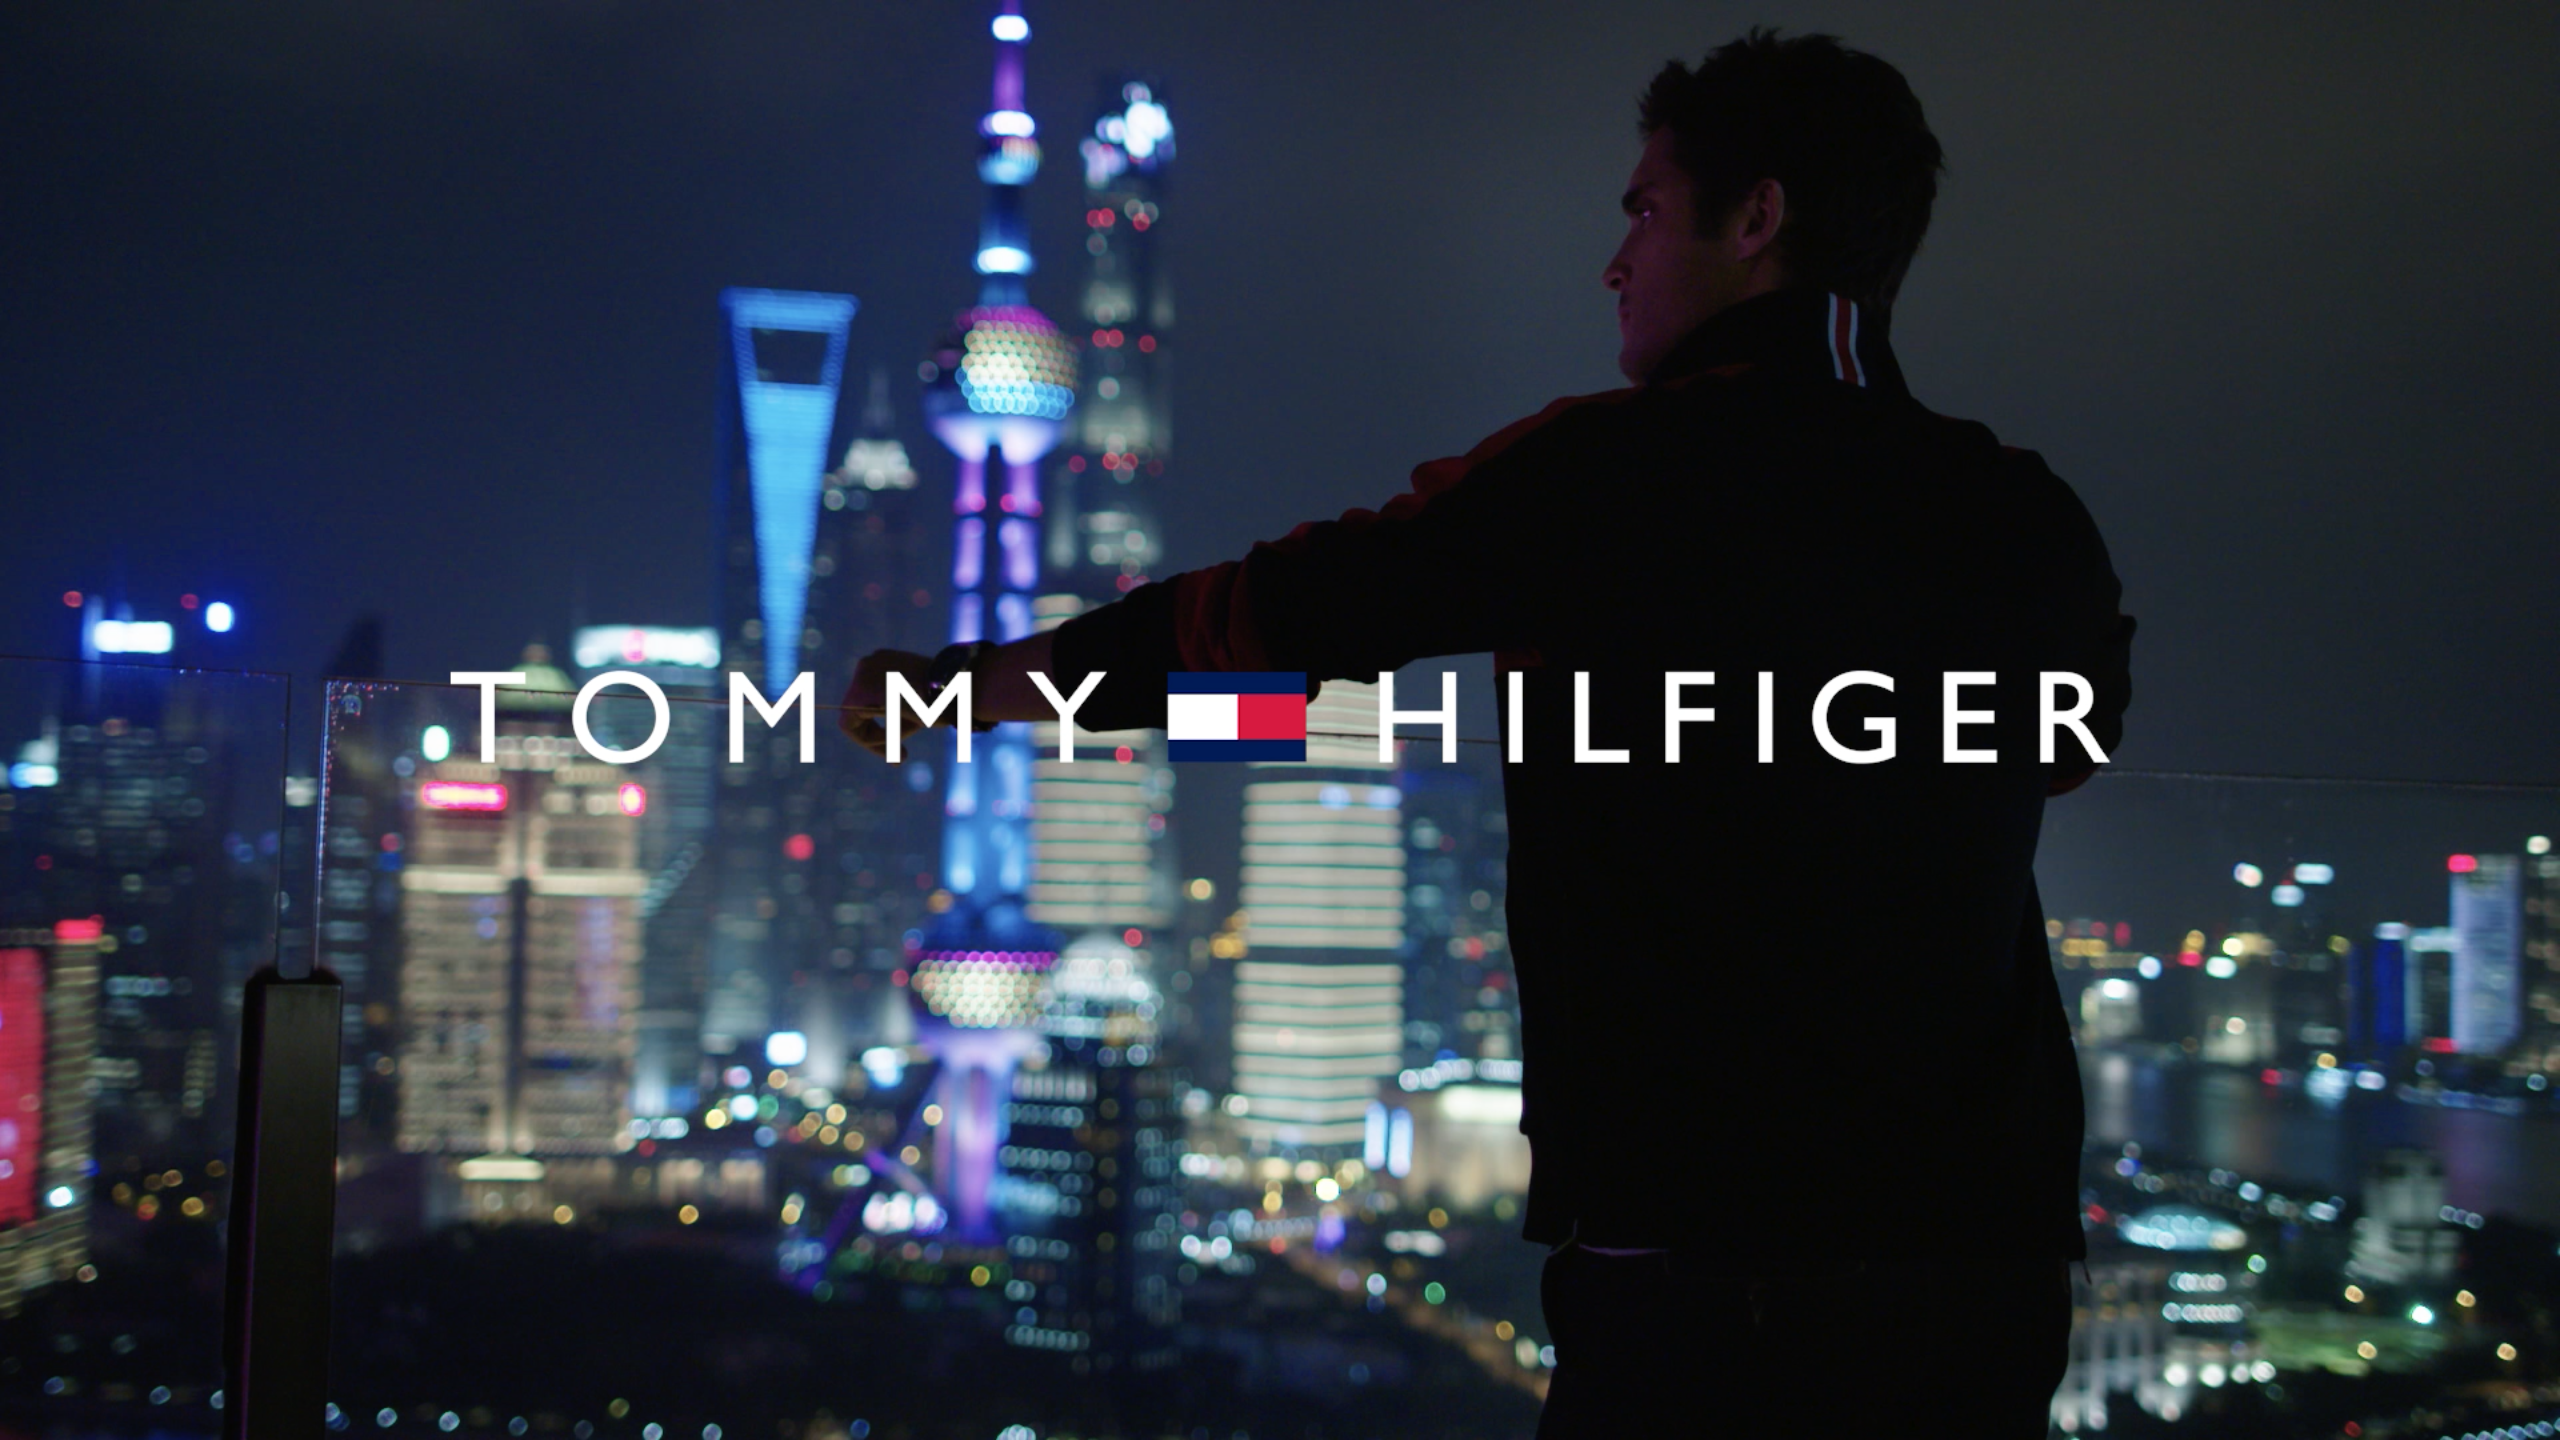 Tommy Hilfiger _#WHATSYOURDRIVE_